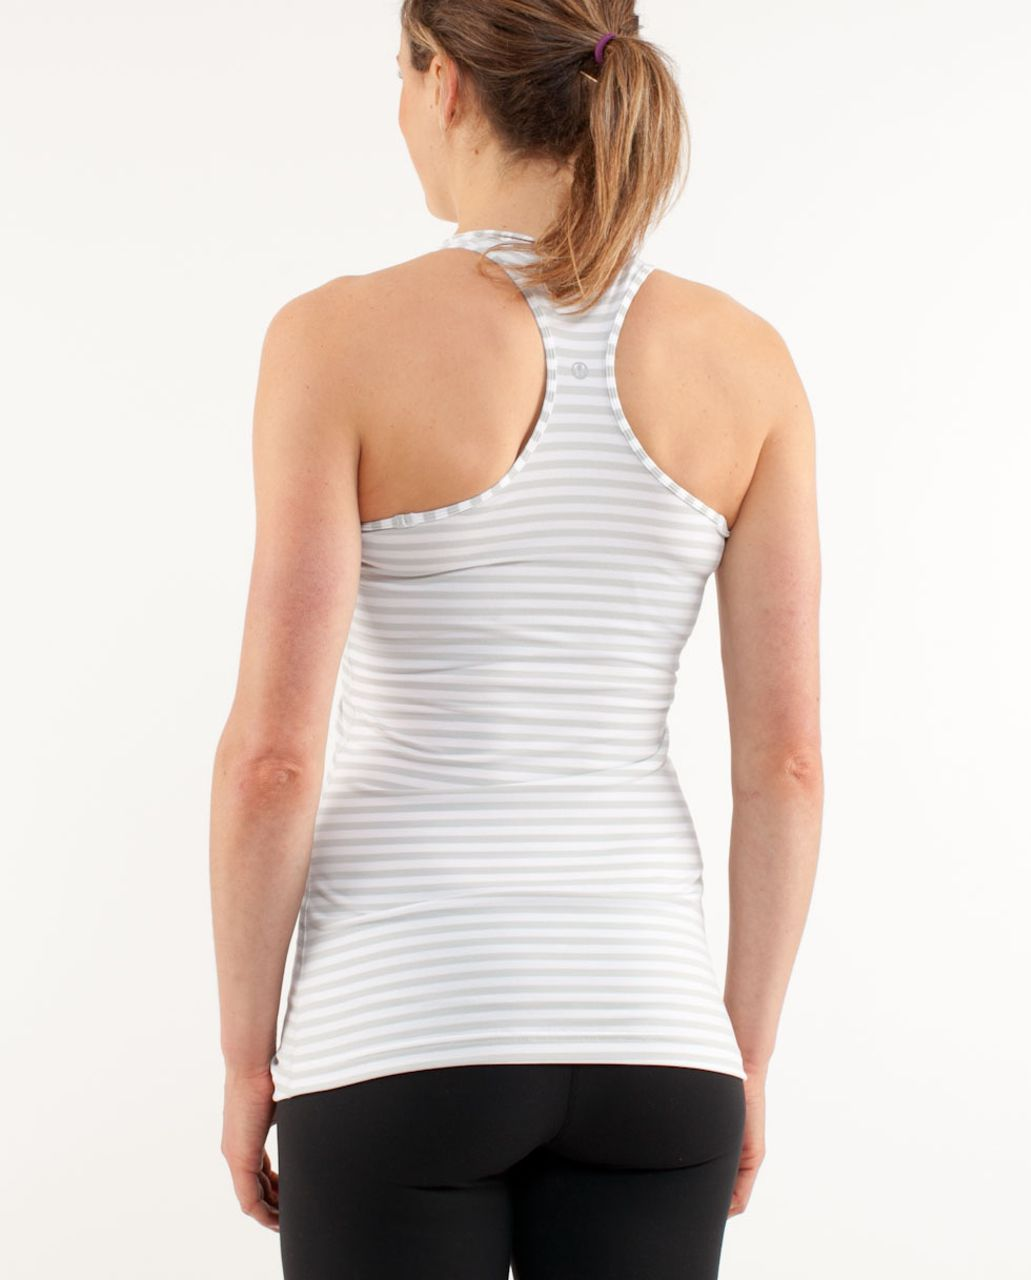 Lululemon Cool Racerback - Silver Spoon White Narrow Bold Multi Stripe